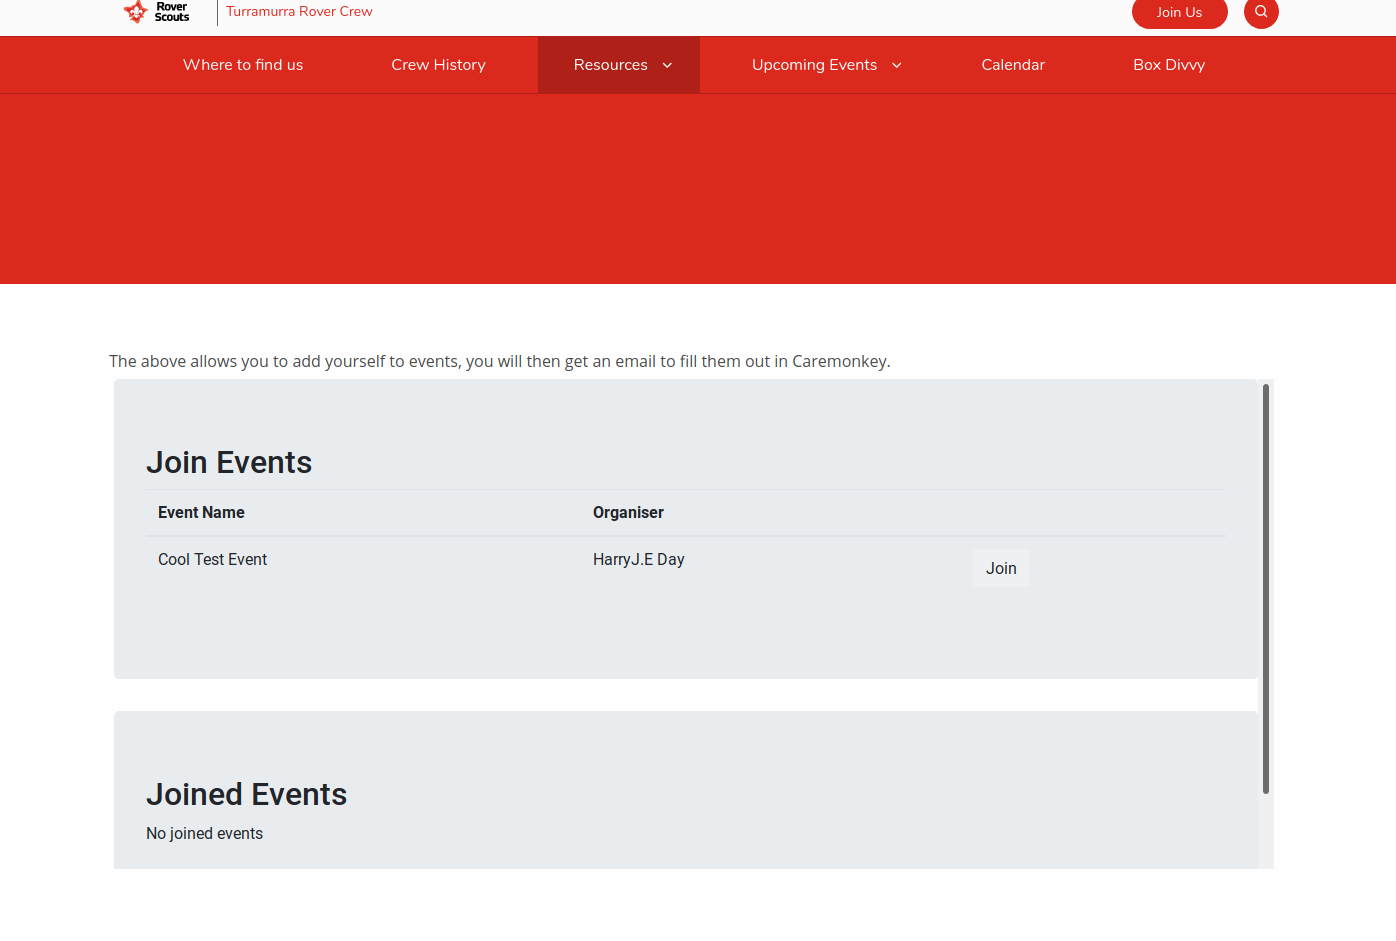 The list of events you can join as a screenshot on the Turramurra website